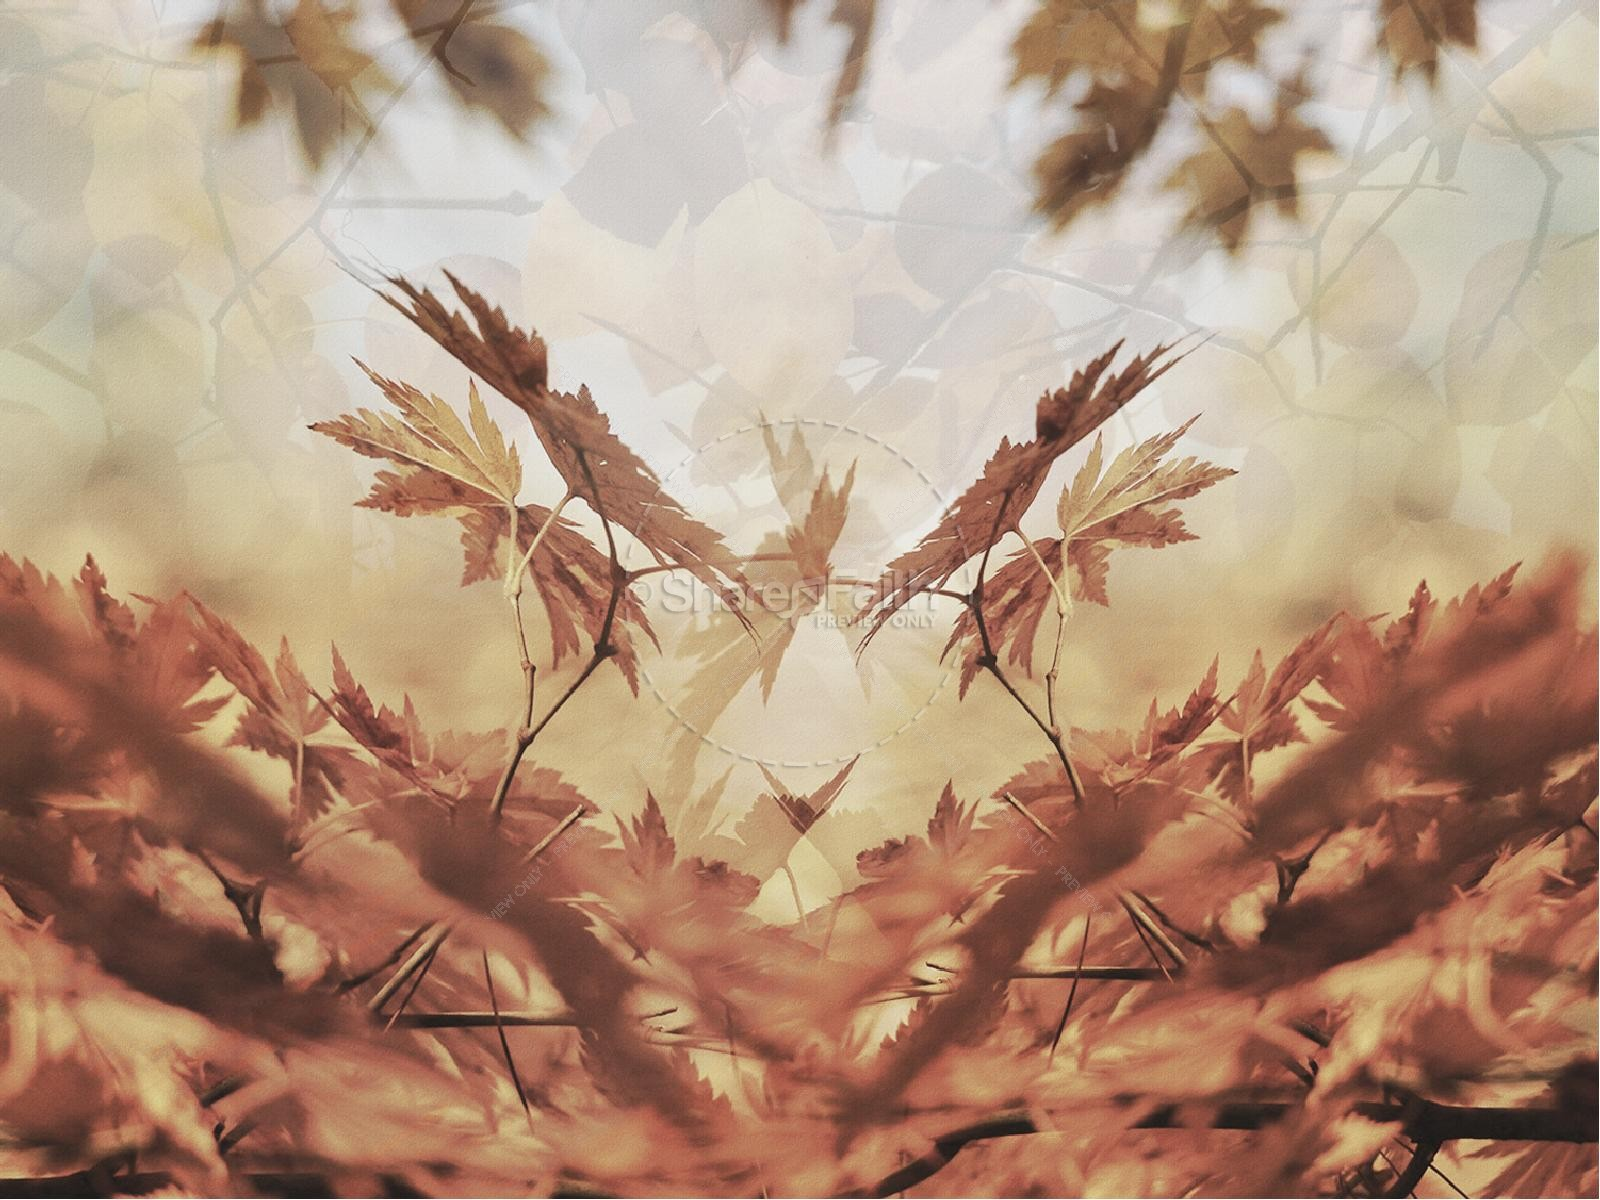 Autumn Falling Leaves Live Wallpaper Trust In The Lord Ministry Powerpoint Fall Thanksgiving